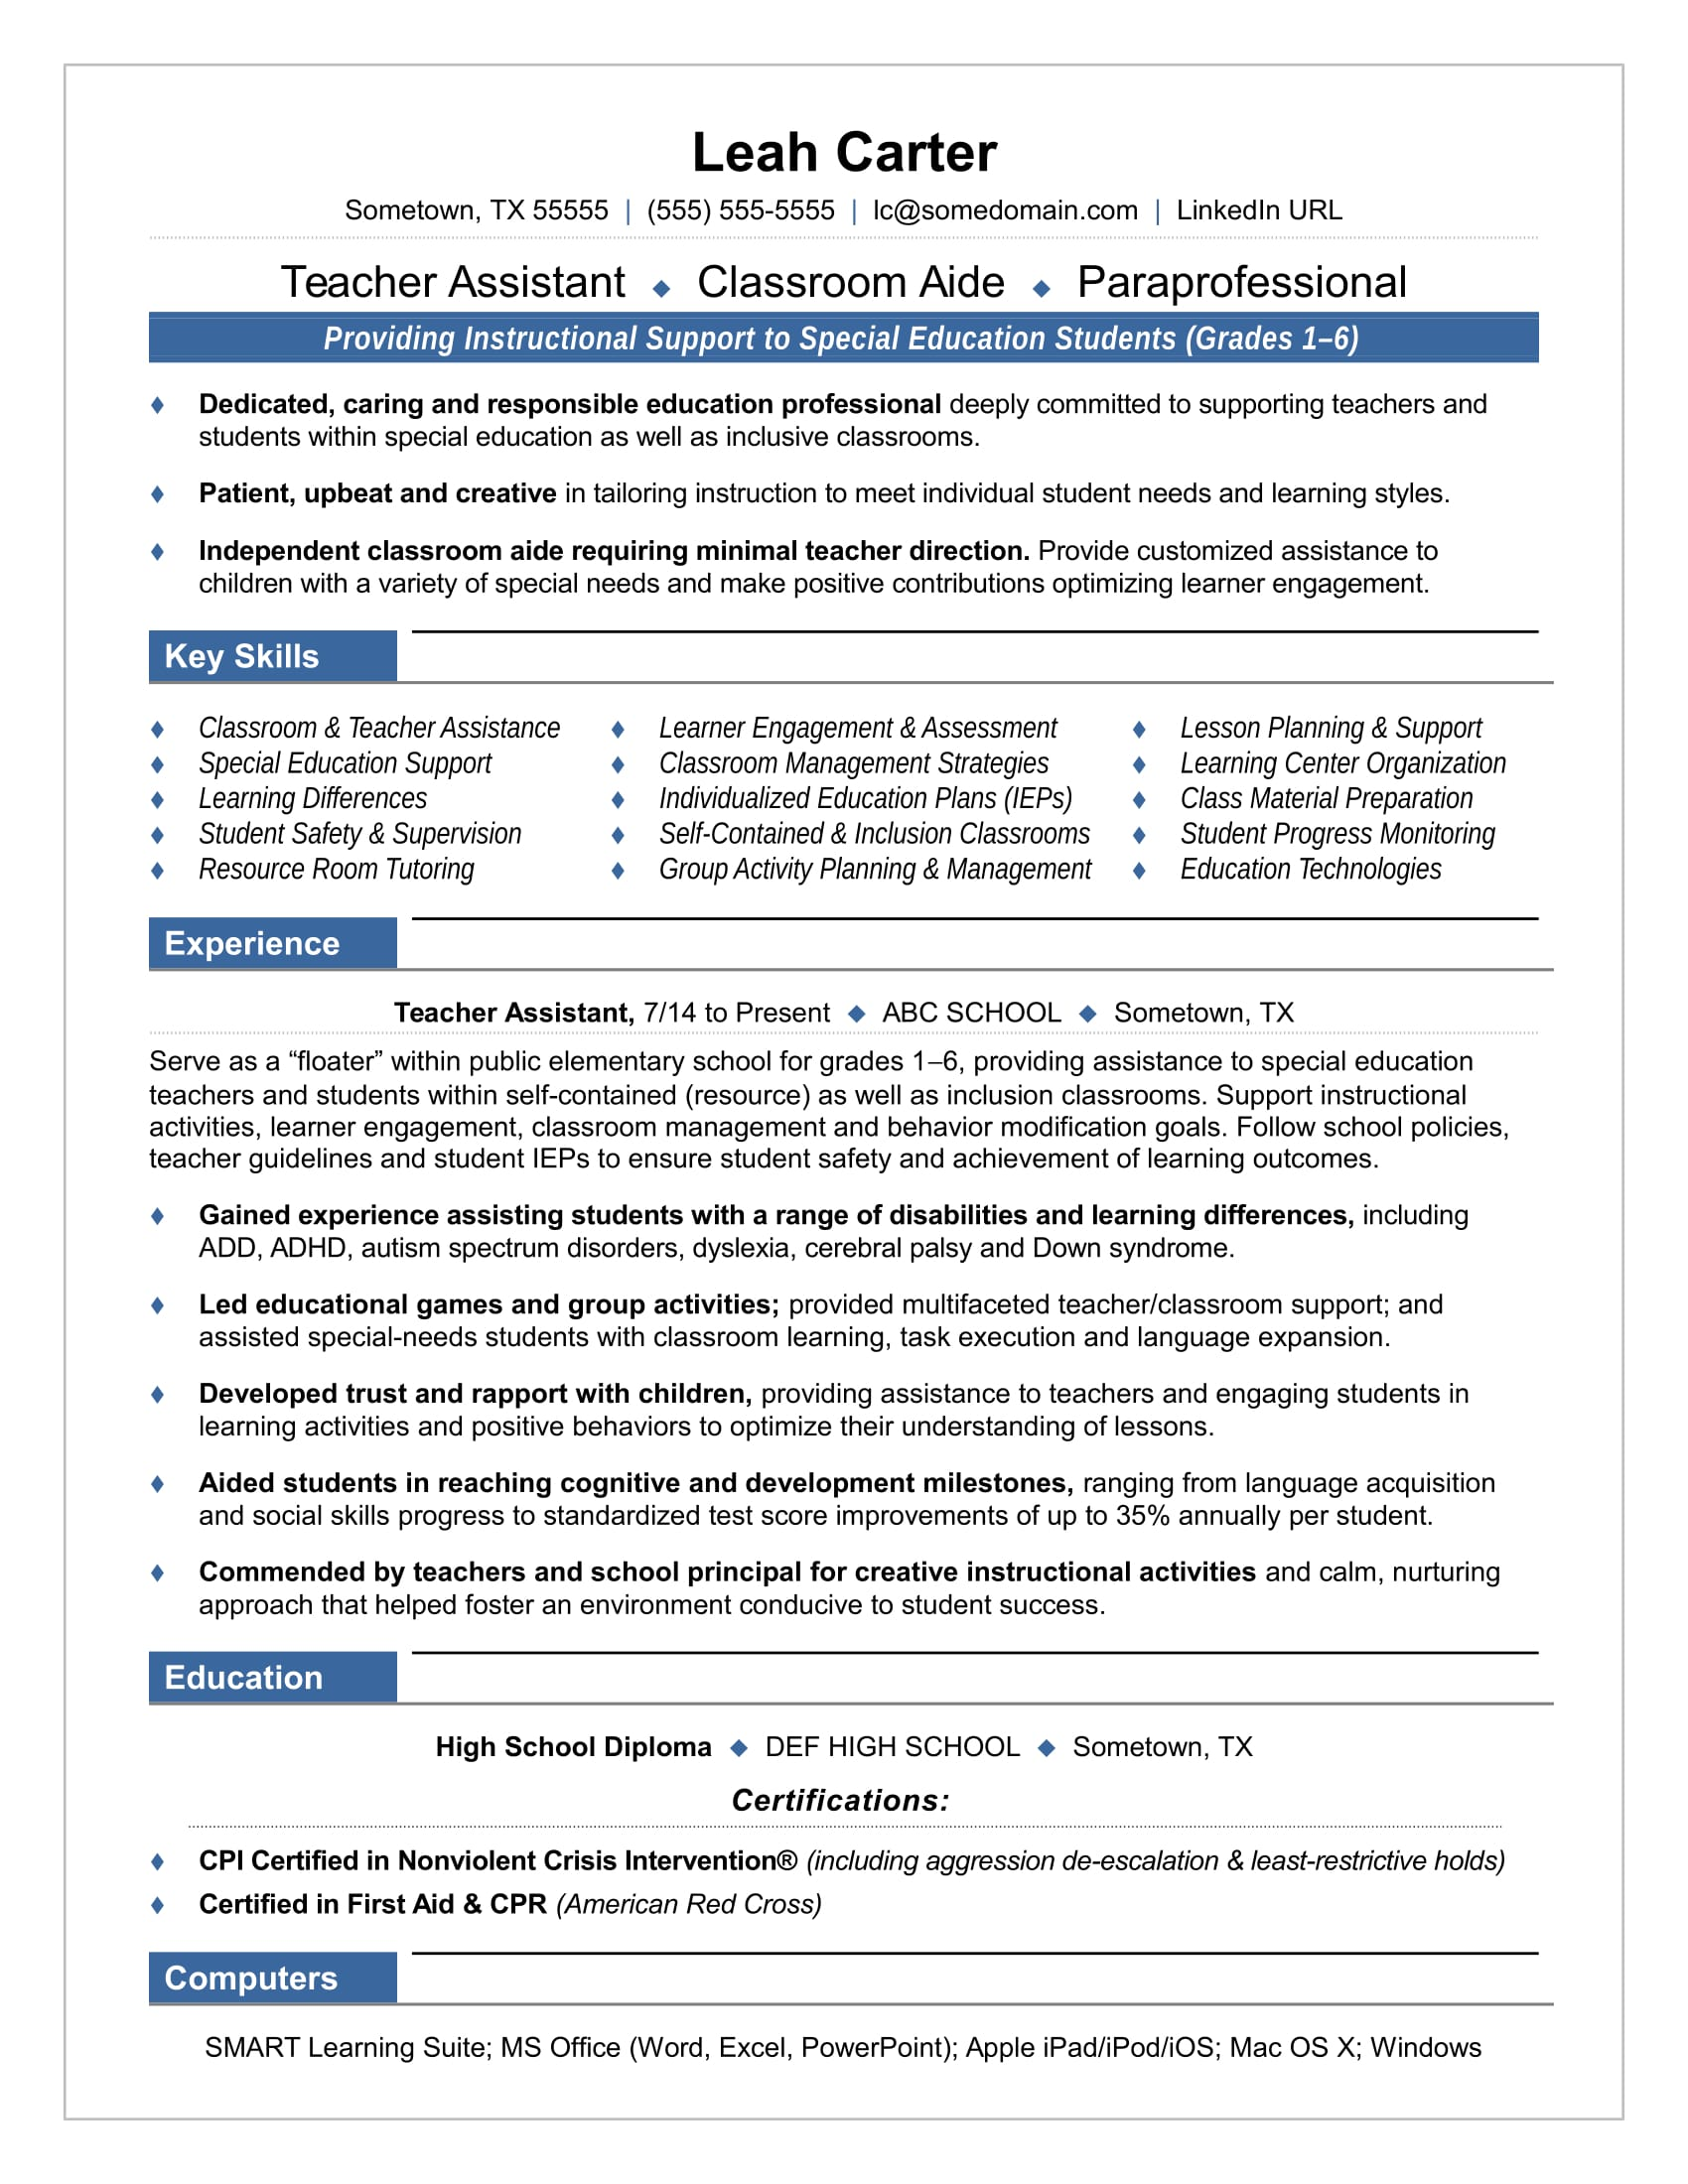 Teacher assistant resume sample monster teacher assistant resume sample yelopaper Gallery